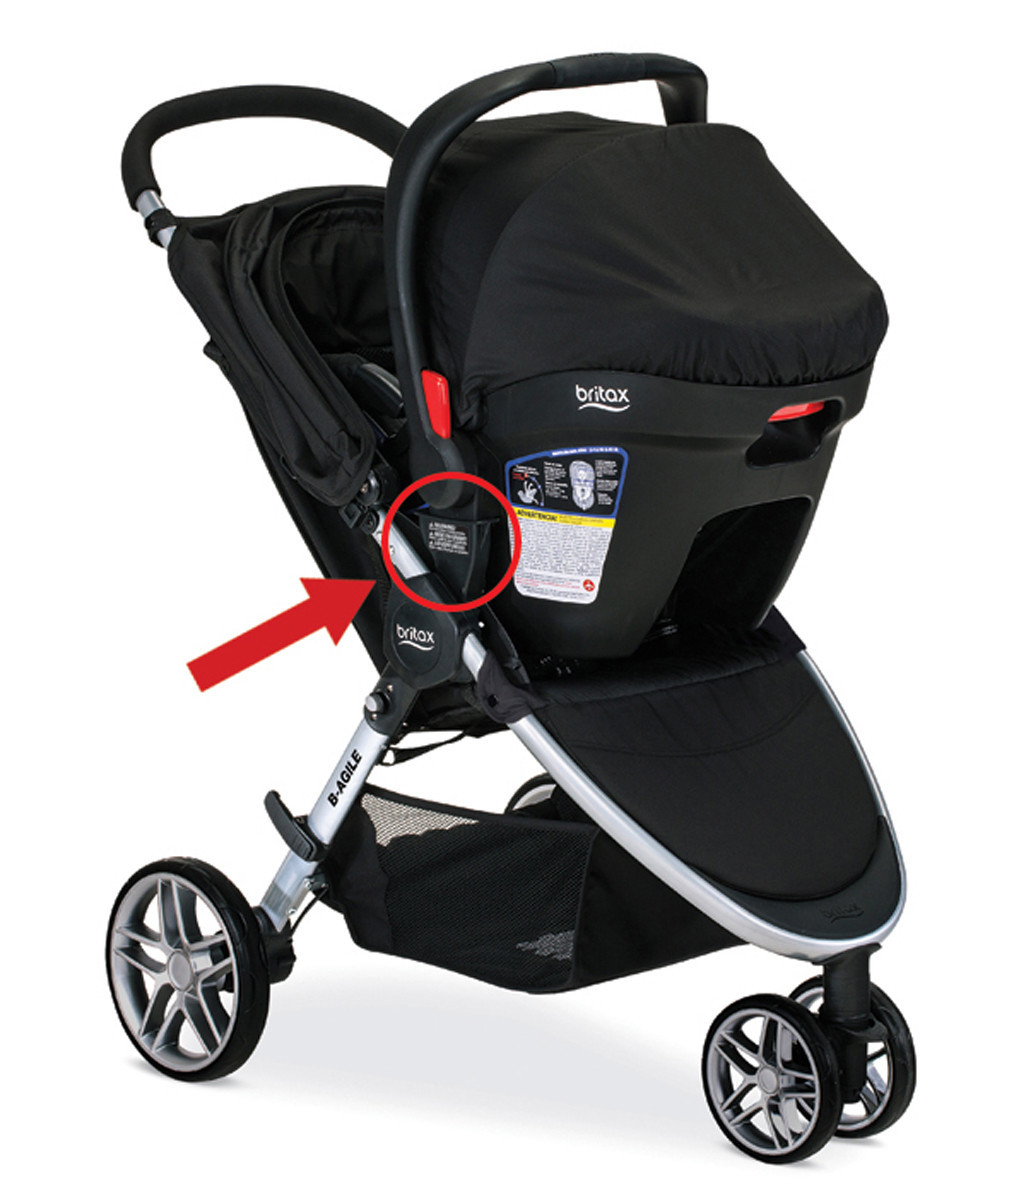 Click Go System For Strollers Sold At Target Babies R Us Recalled Could Disengage